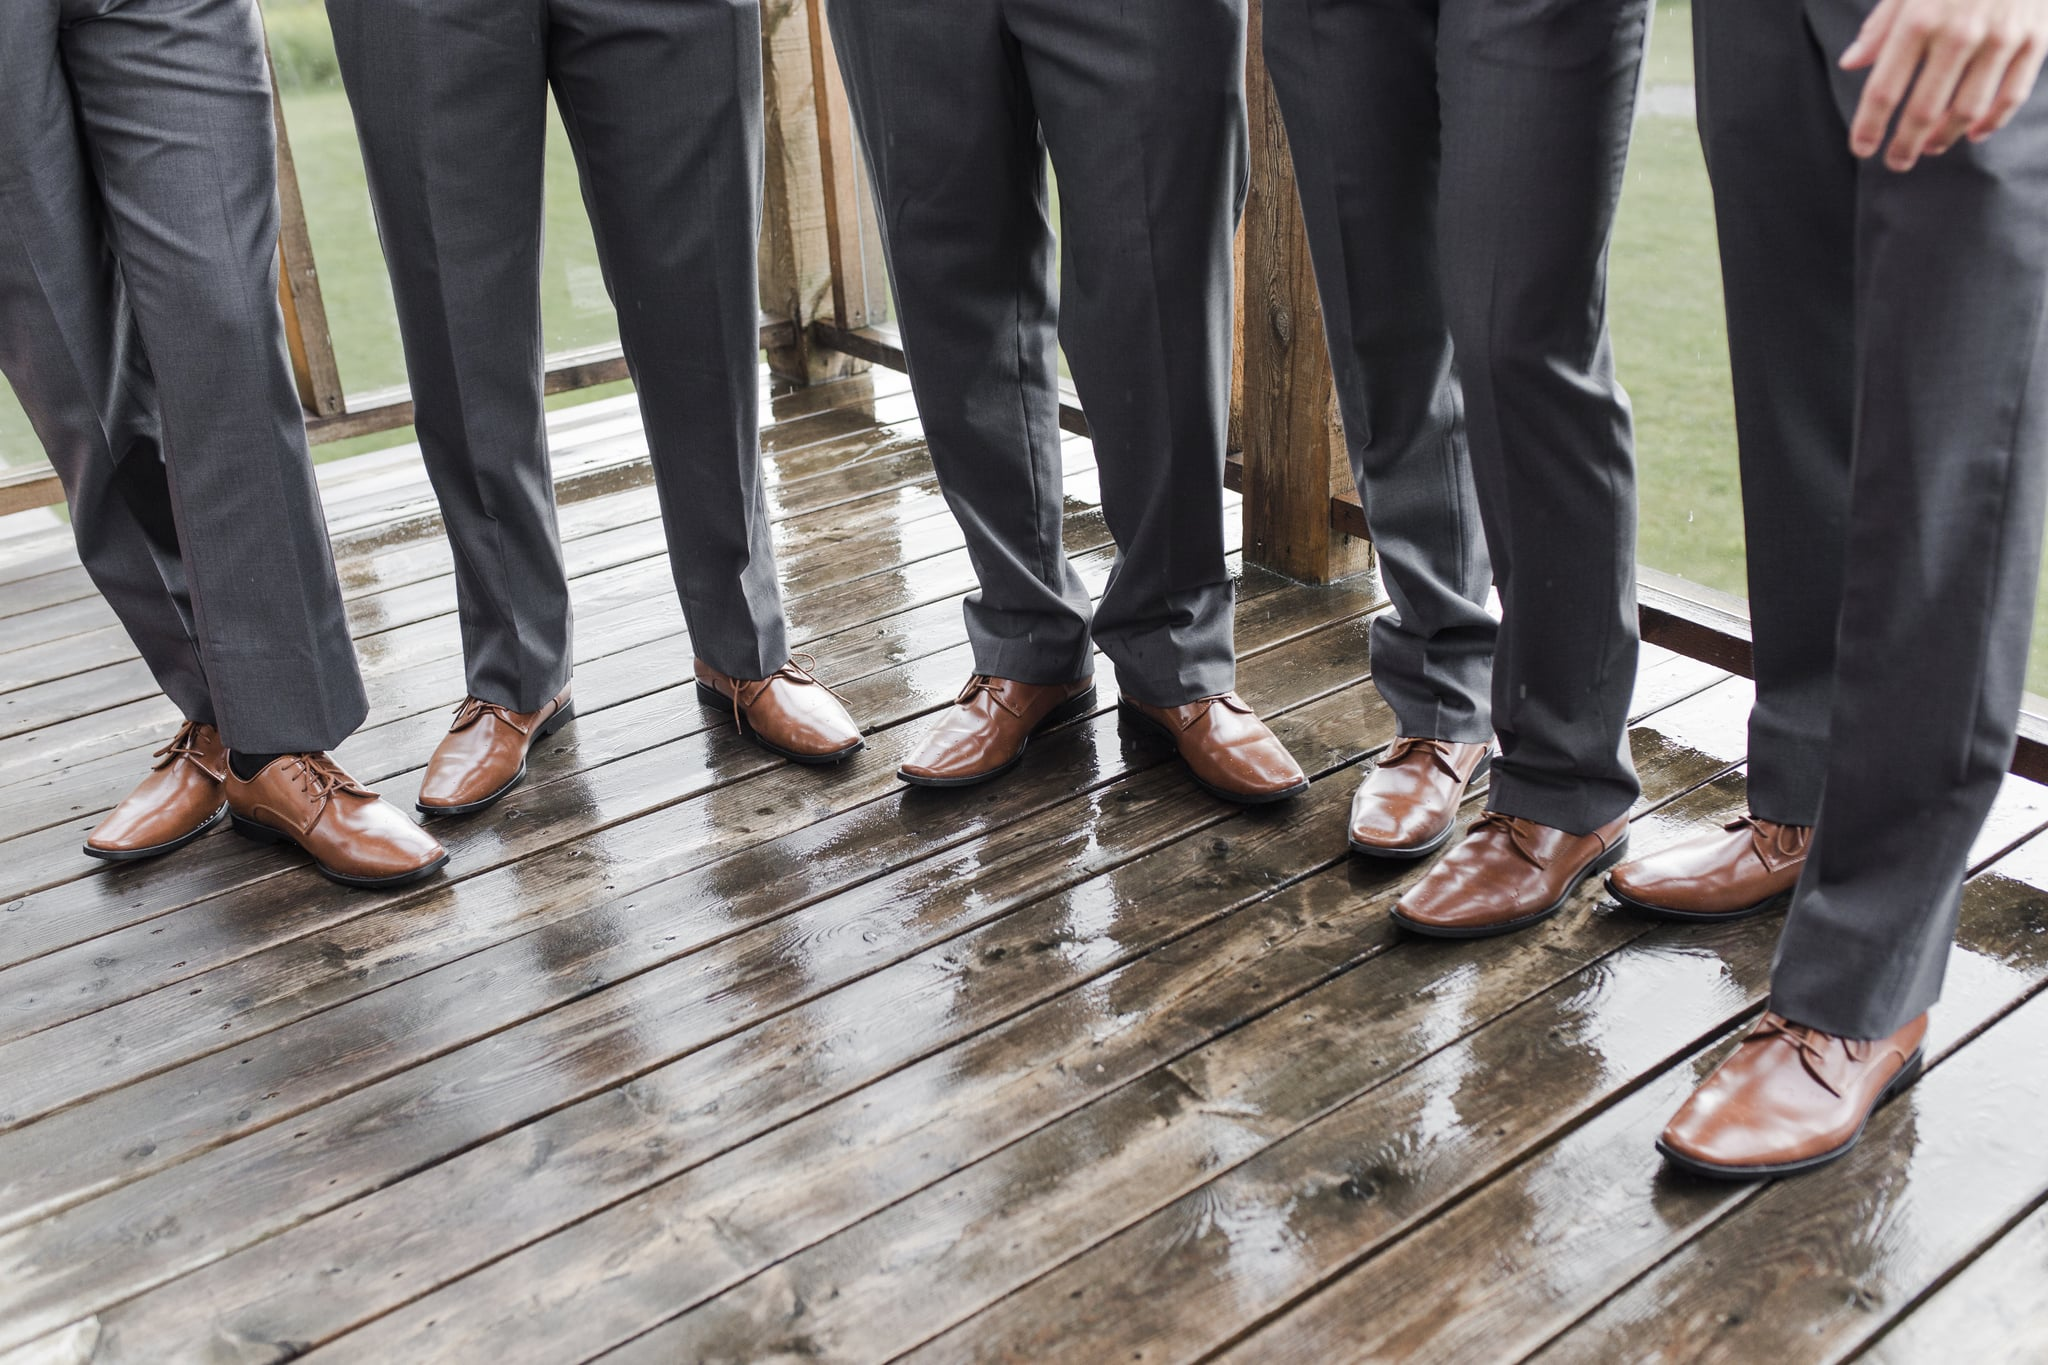 Groomsmen legs and shoes in a row